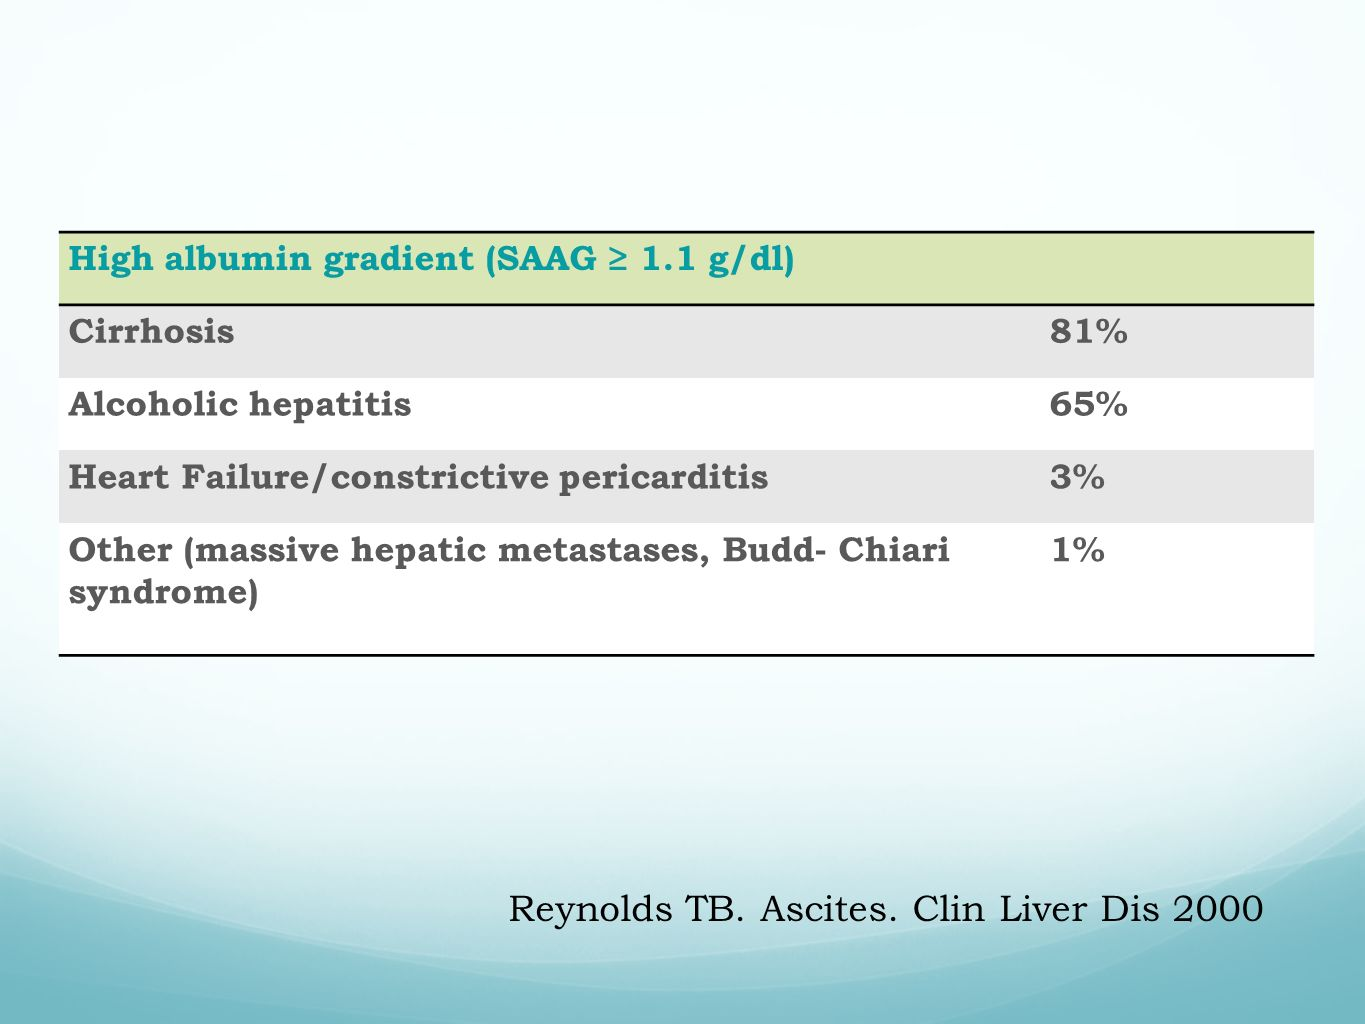 81% 65% 3% High albumin gradient (SAAG 1.1 g/dl) Cirrhosis81% Alcoholic hepatitis65% Heart Failure/constrictive pericarditis3% Other (massive hepatic